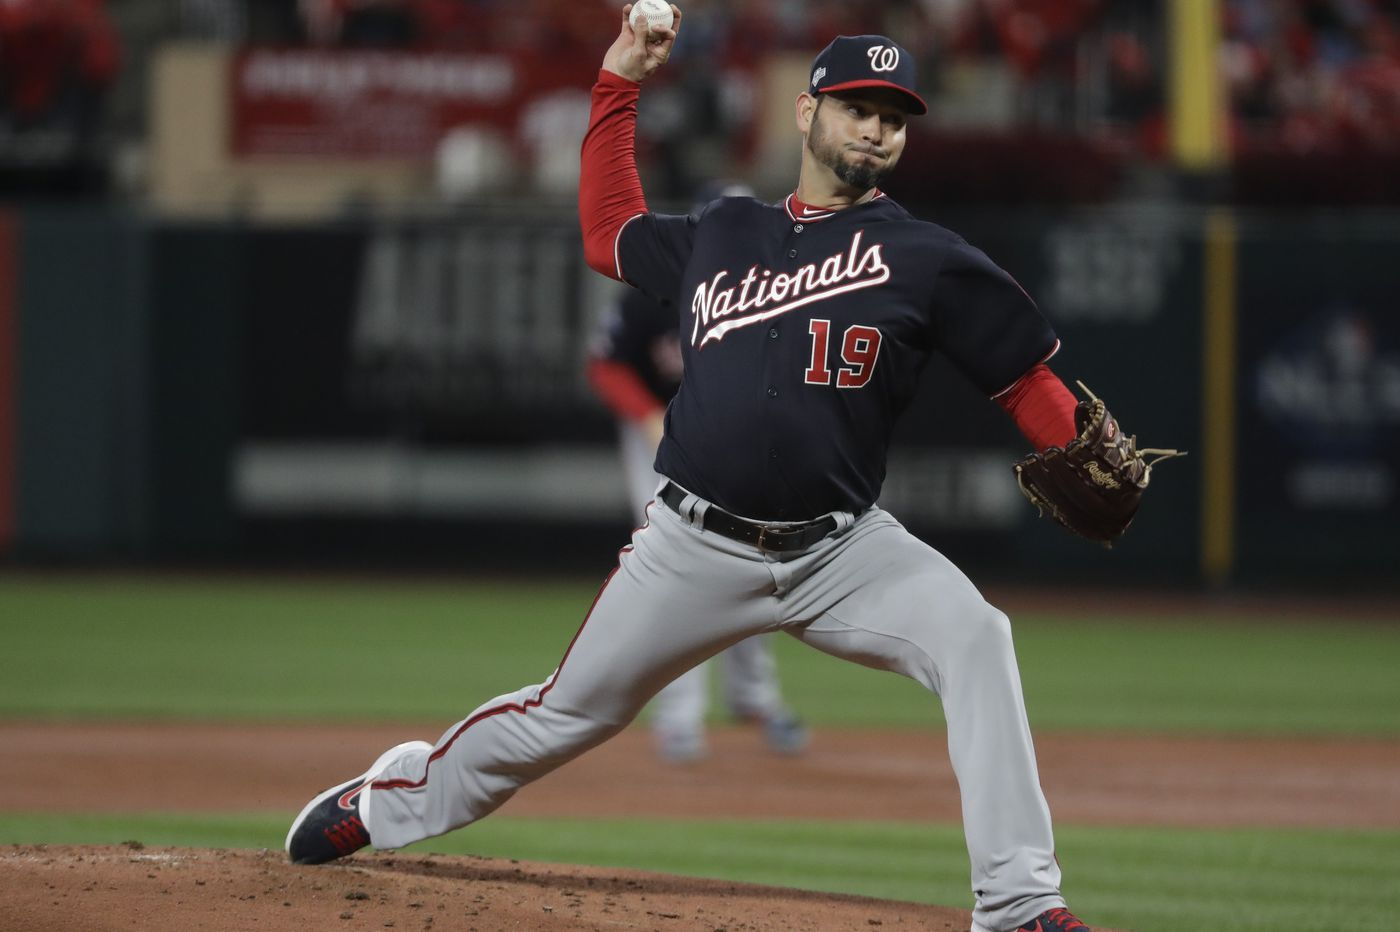 Sánchez shines as Nationals beat Cards, 2-0, in NLCS opener